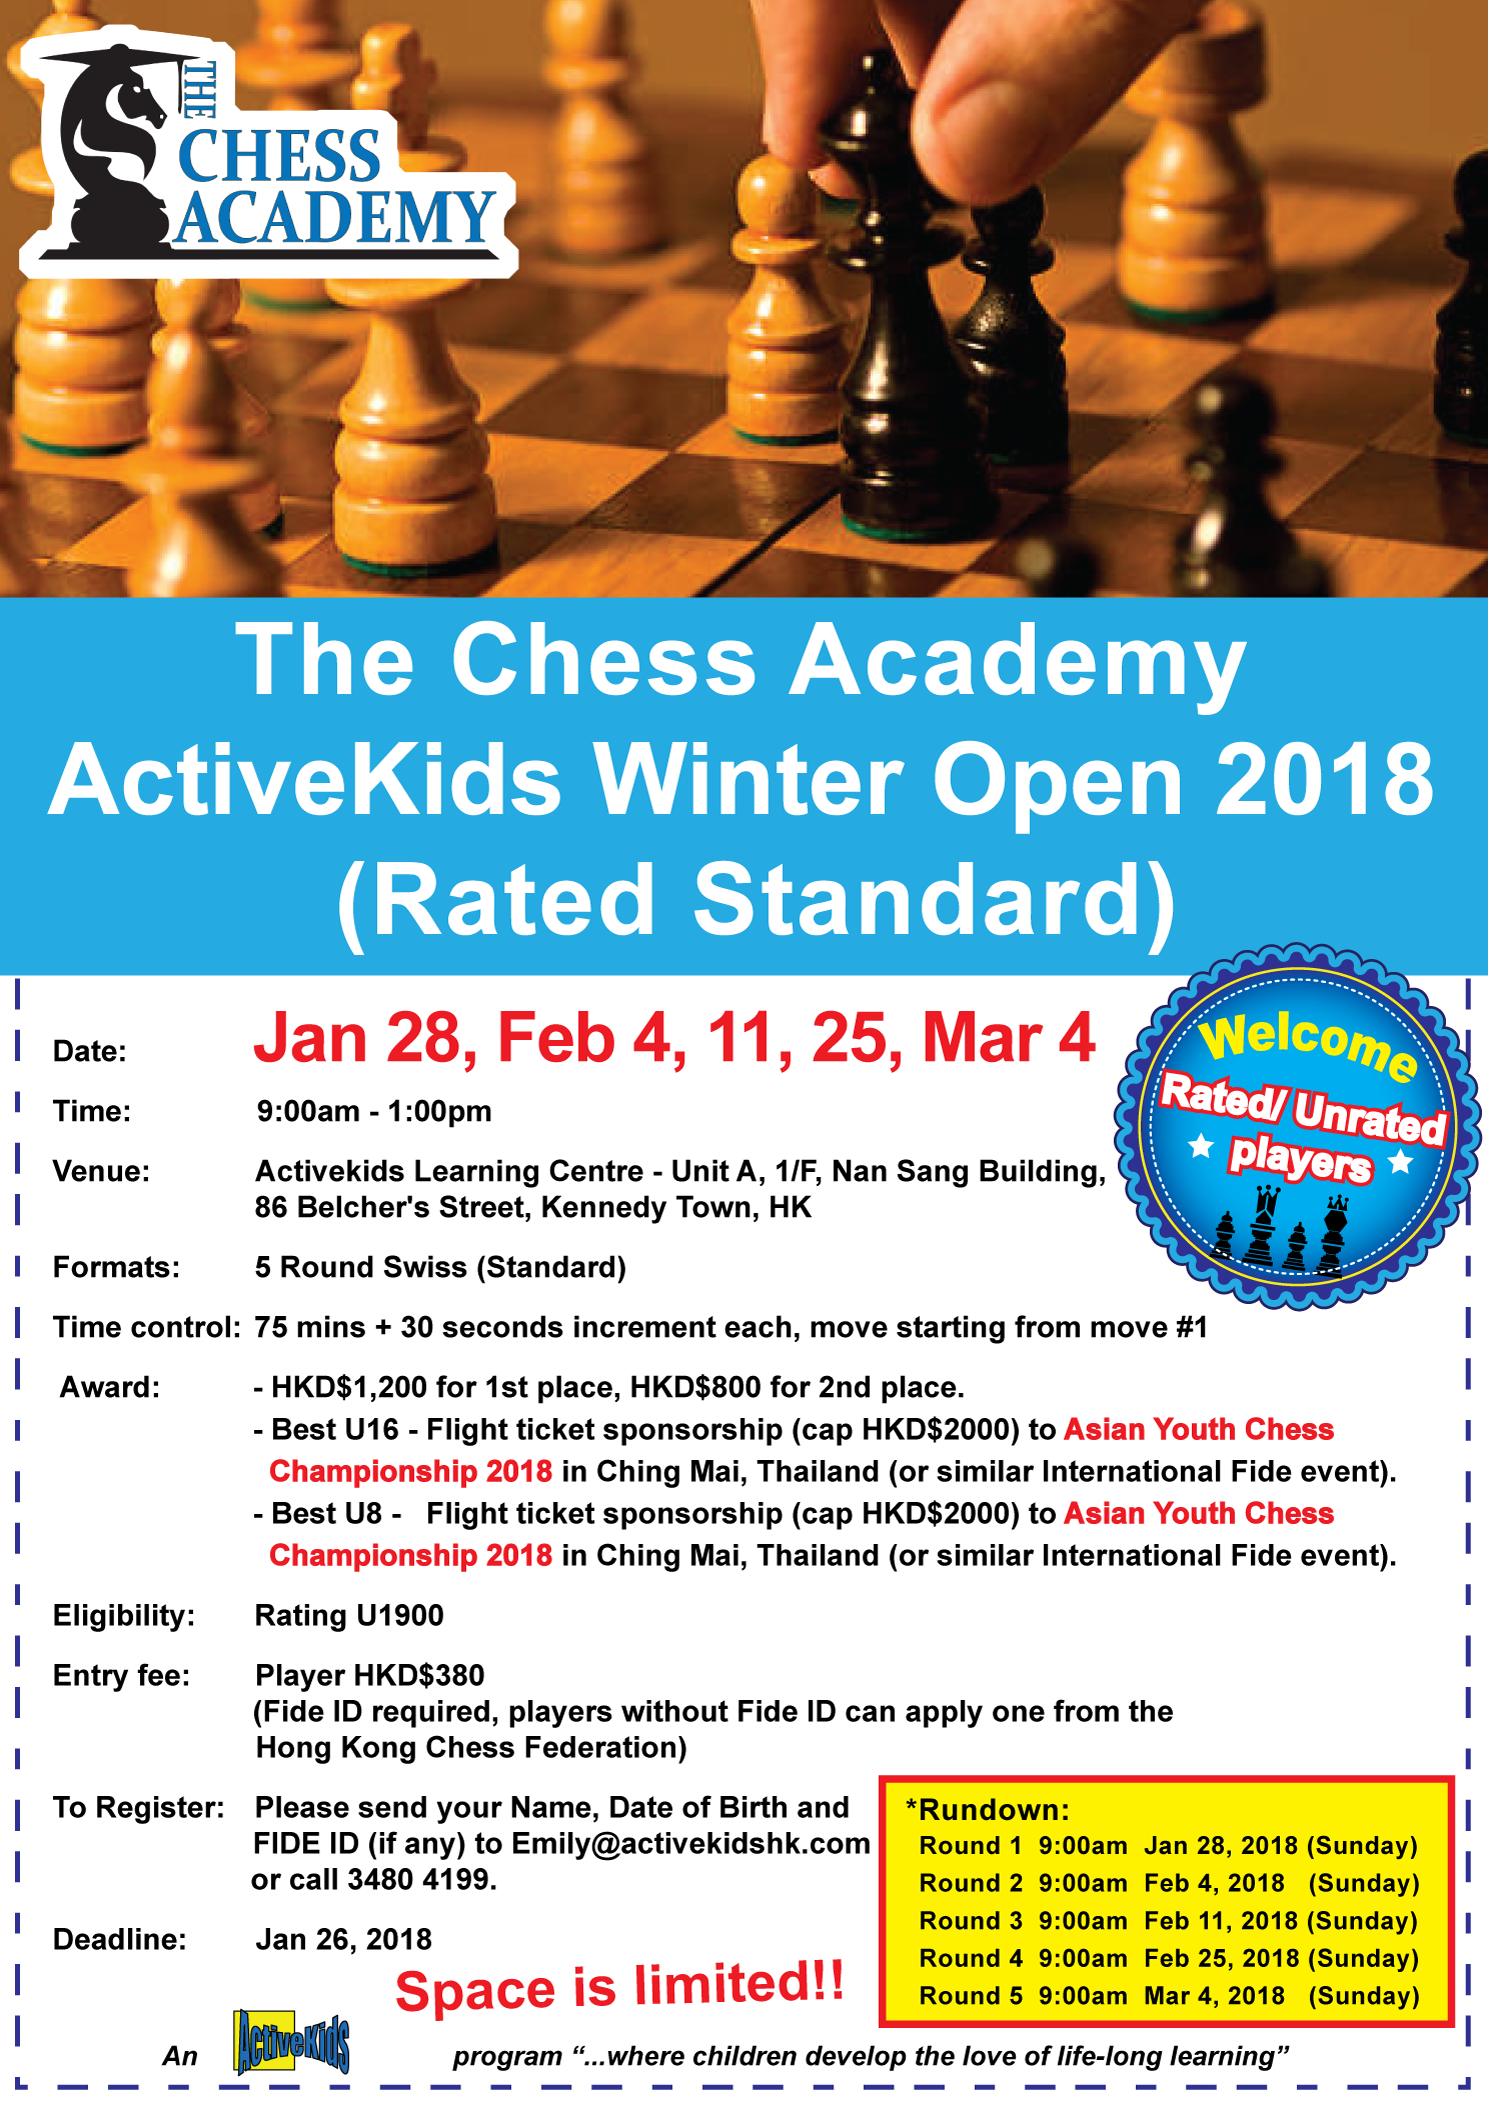 The Chess Academy ActiveKids Winter Open 2018 (Rated Standard)